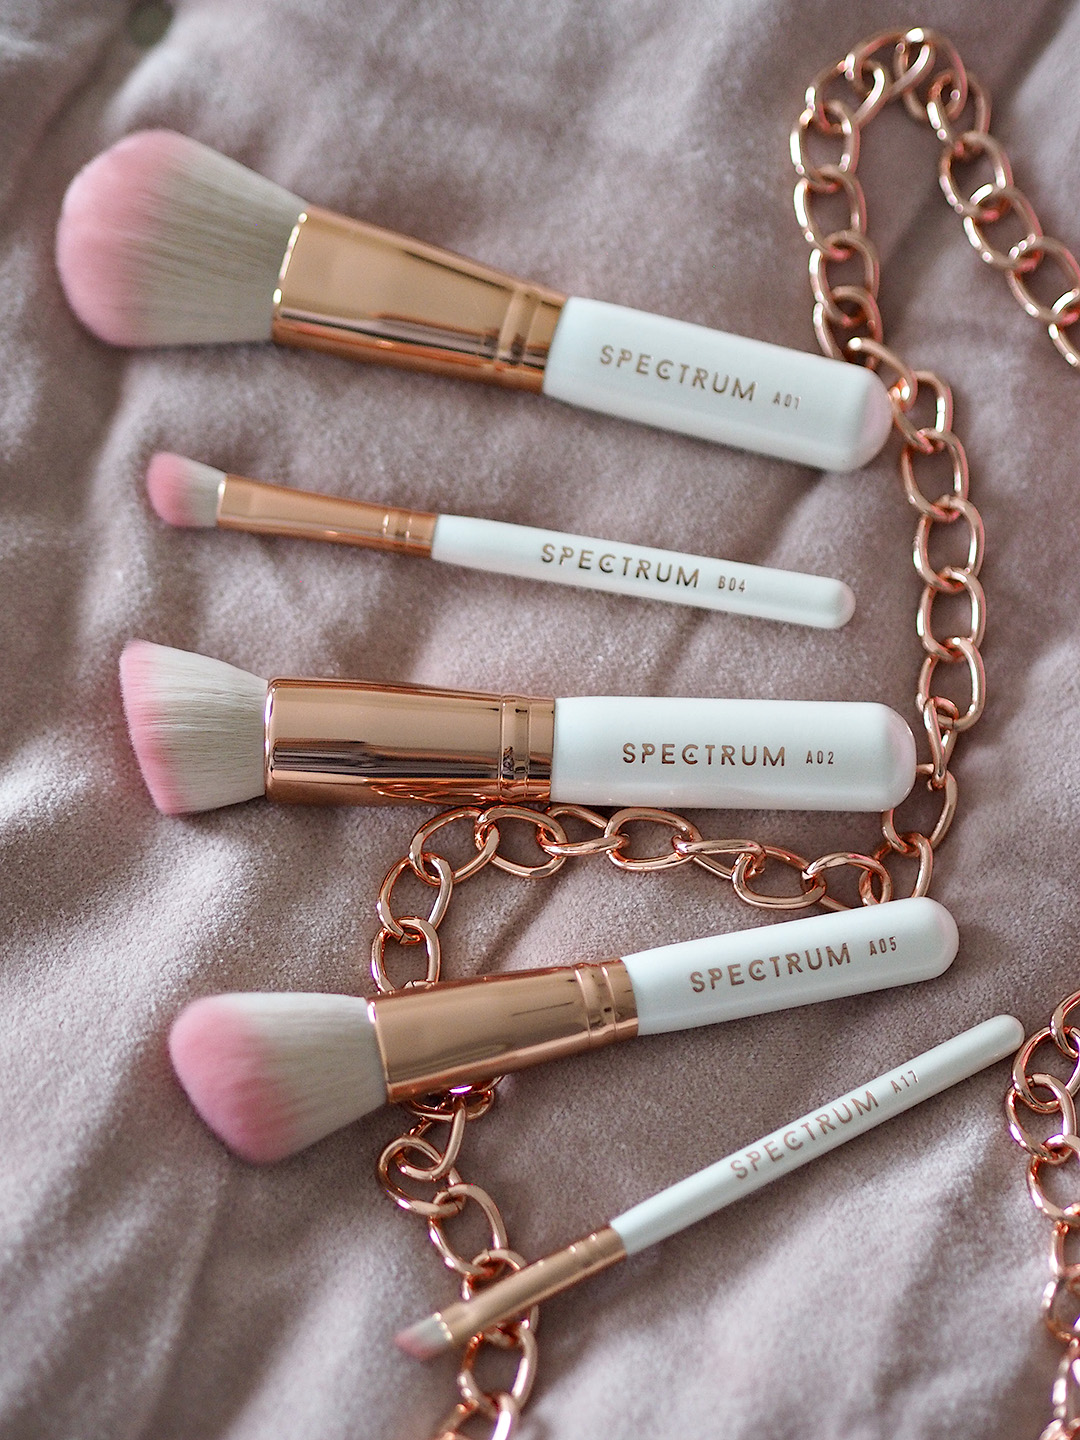 Spectrum Sweetheart Makeup Brushes